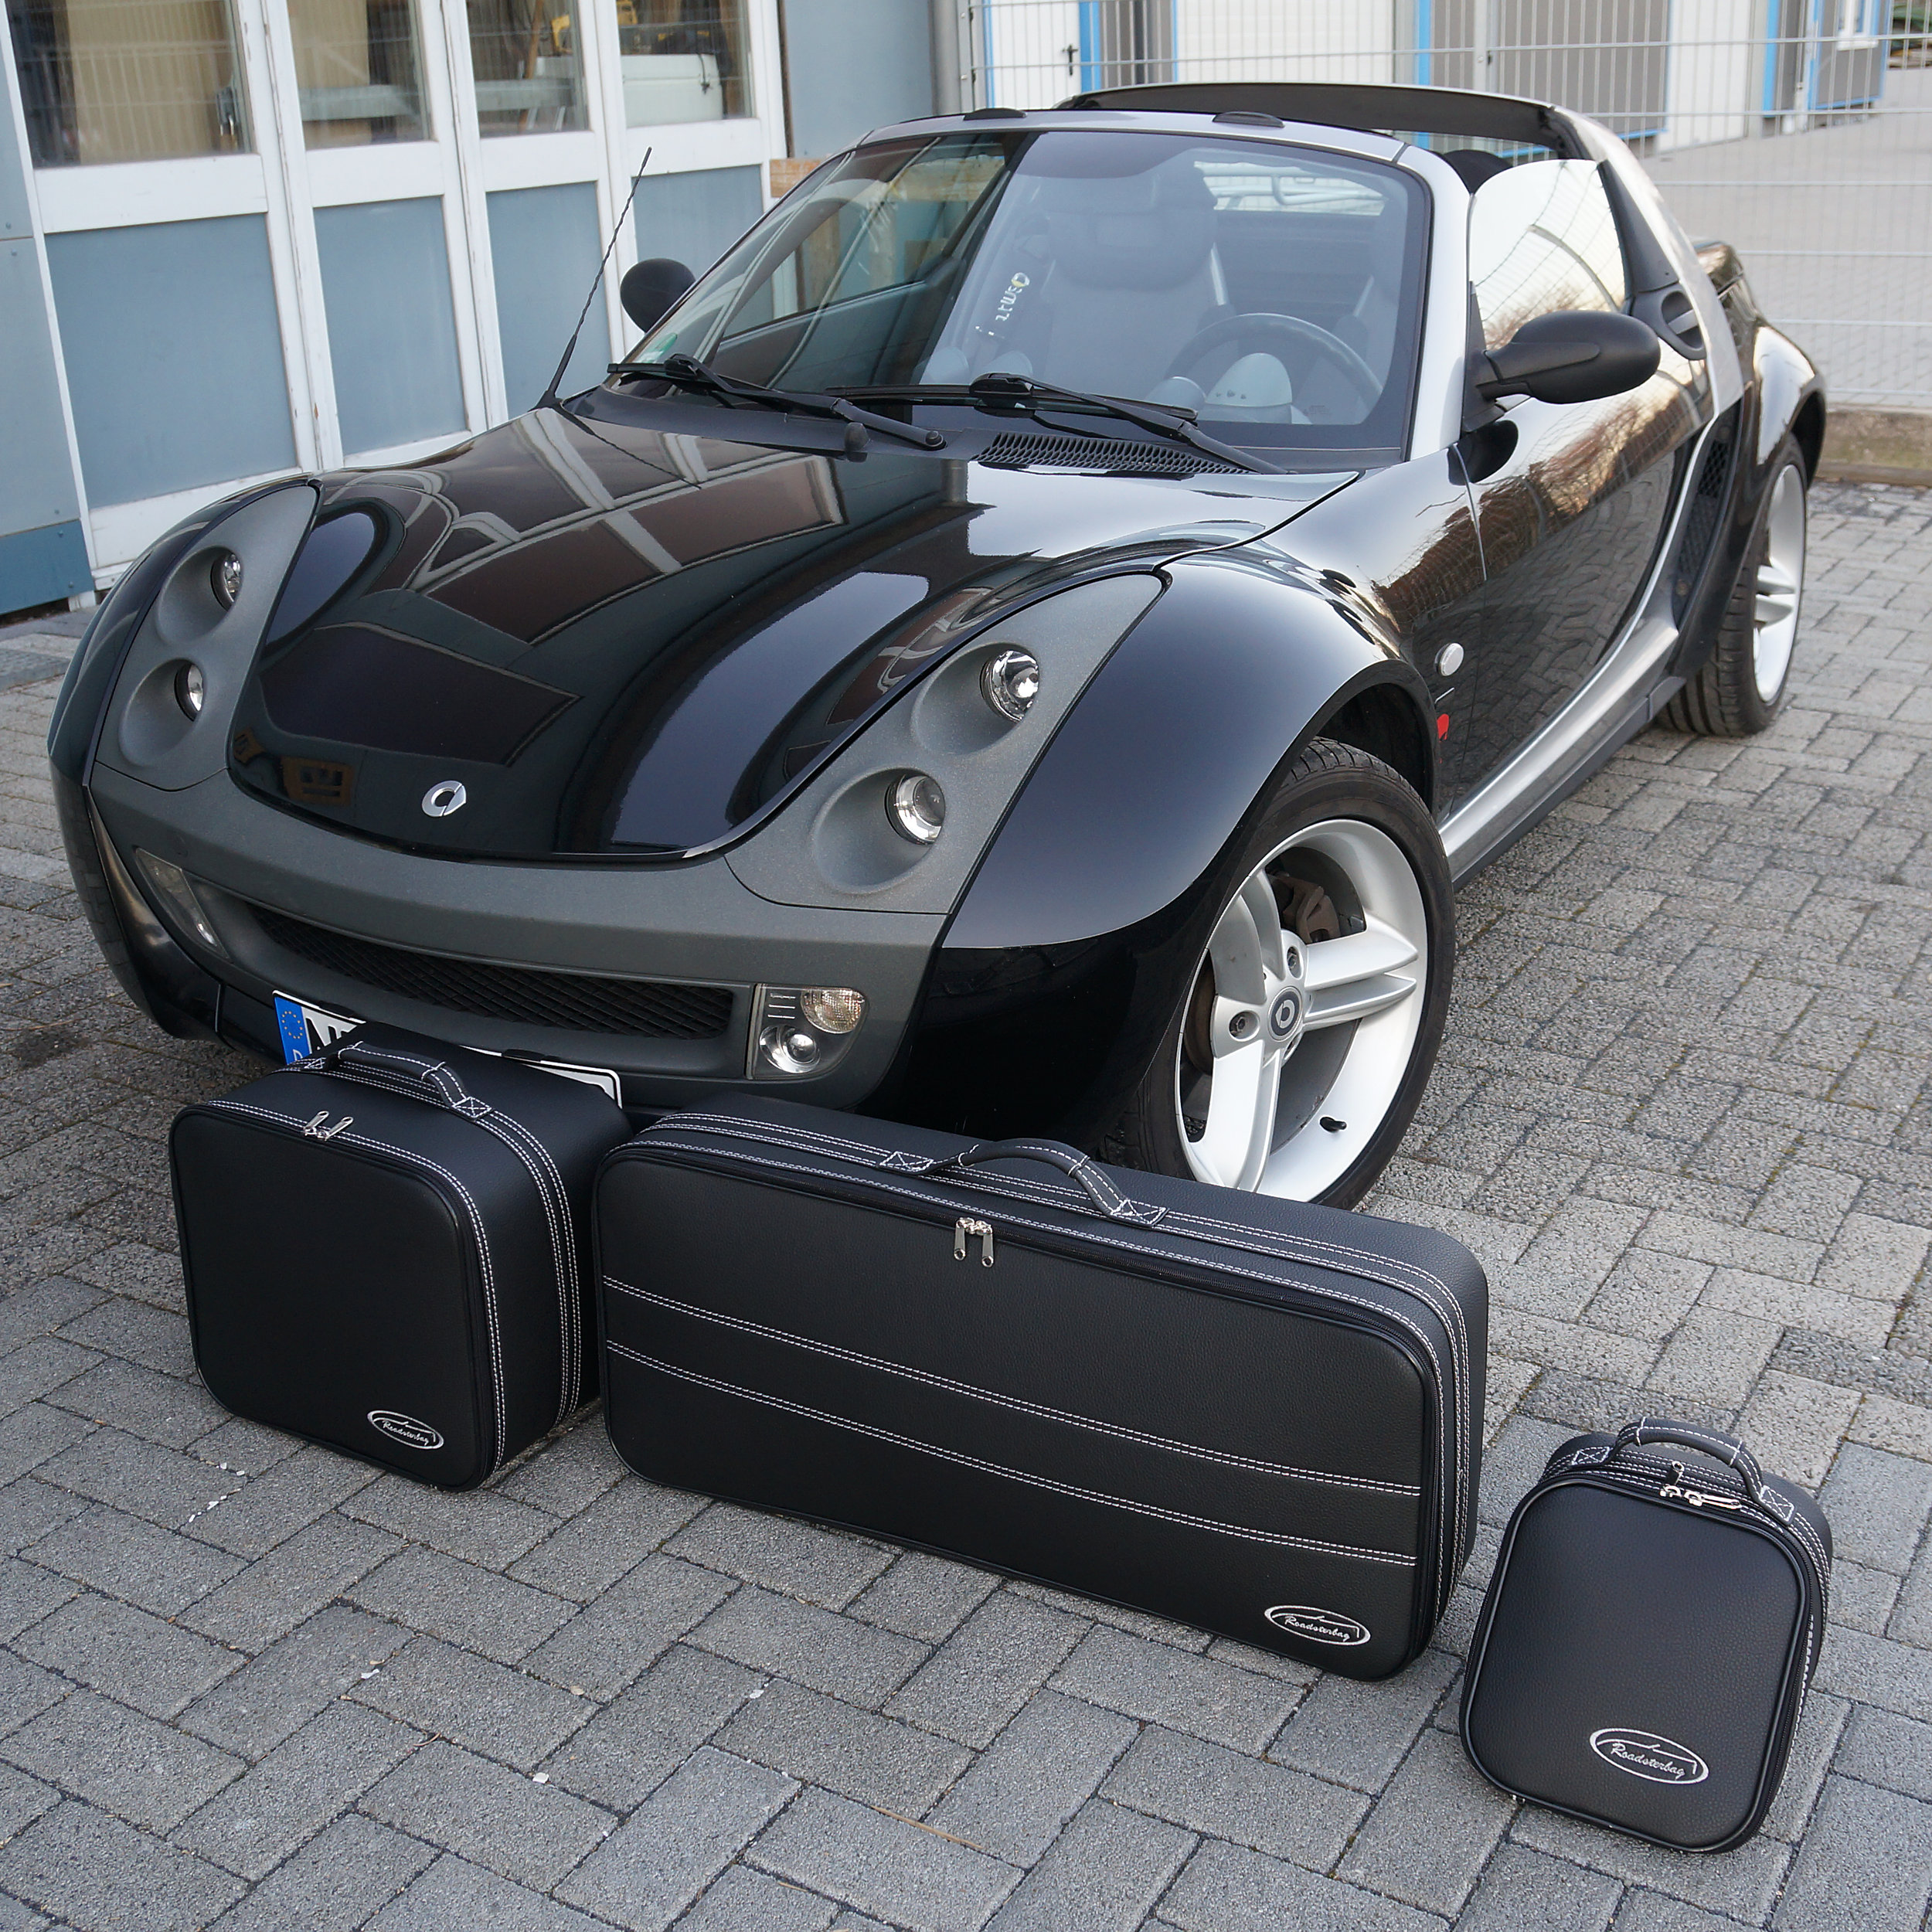 3-tlg. Kofferset Smart Roadster